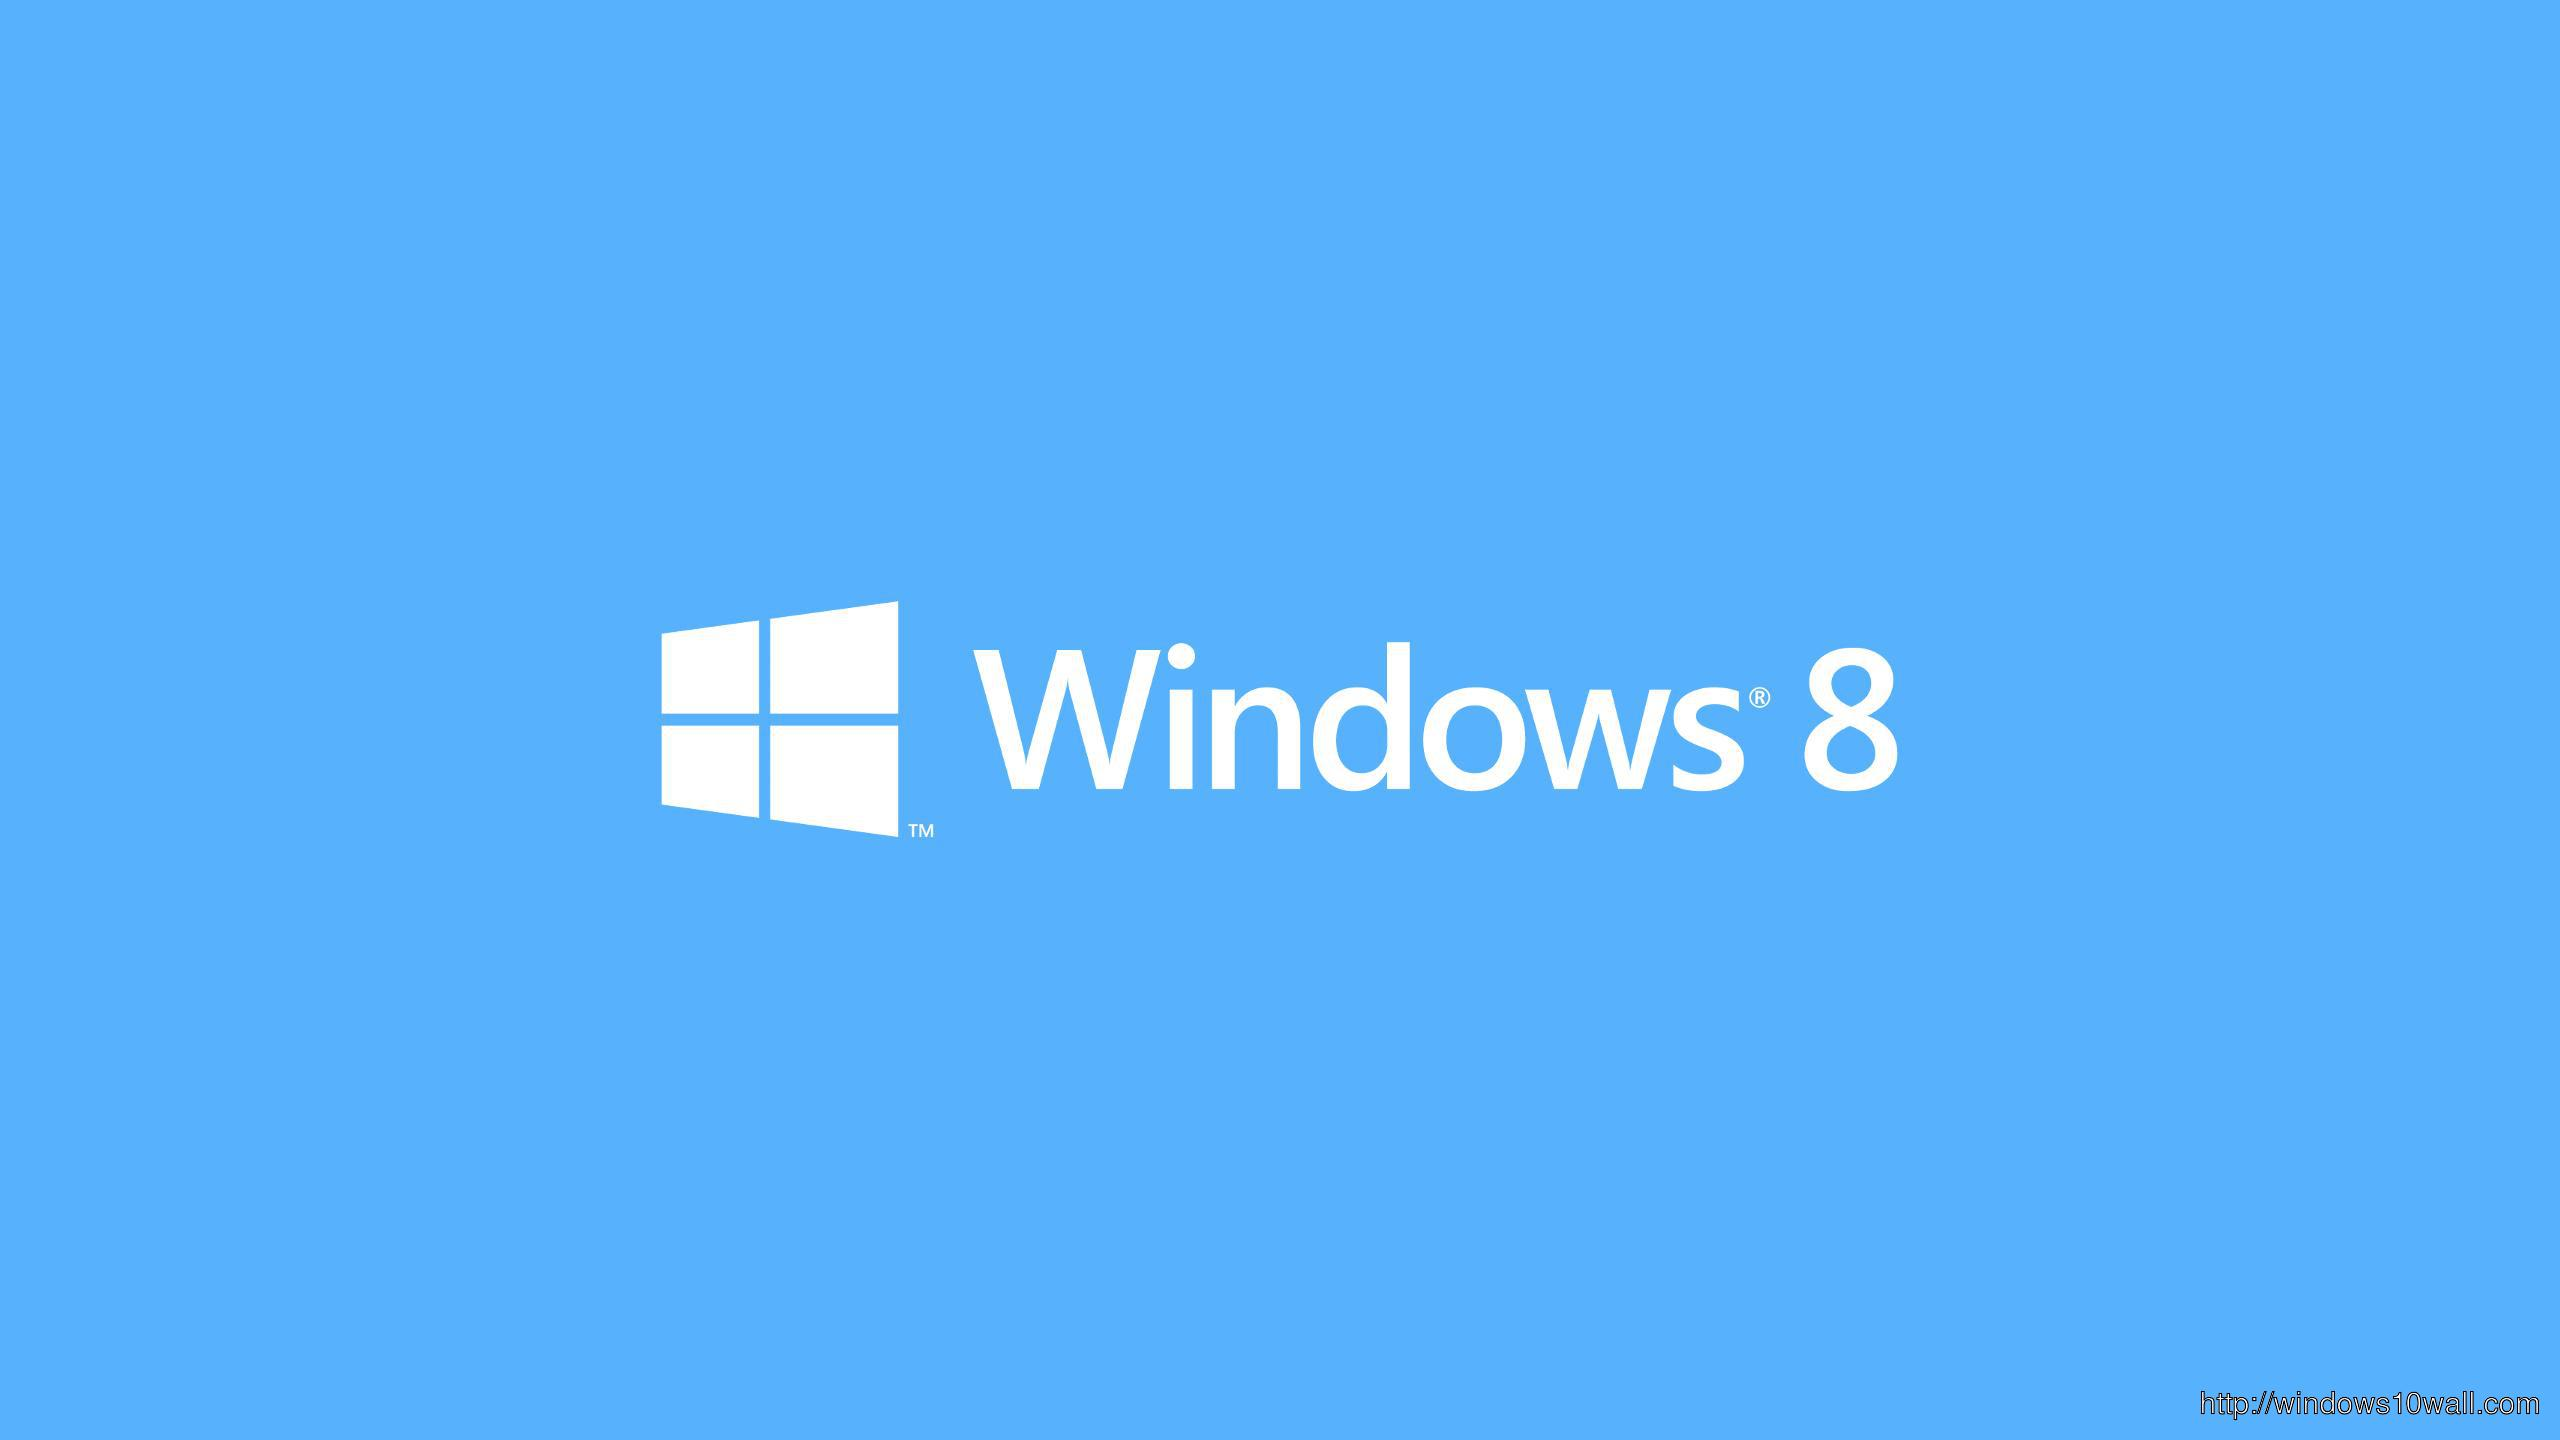 Windows 8 Background Logo